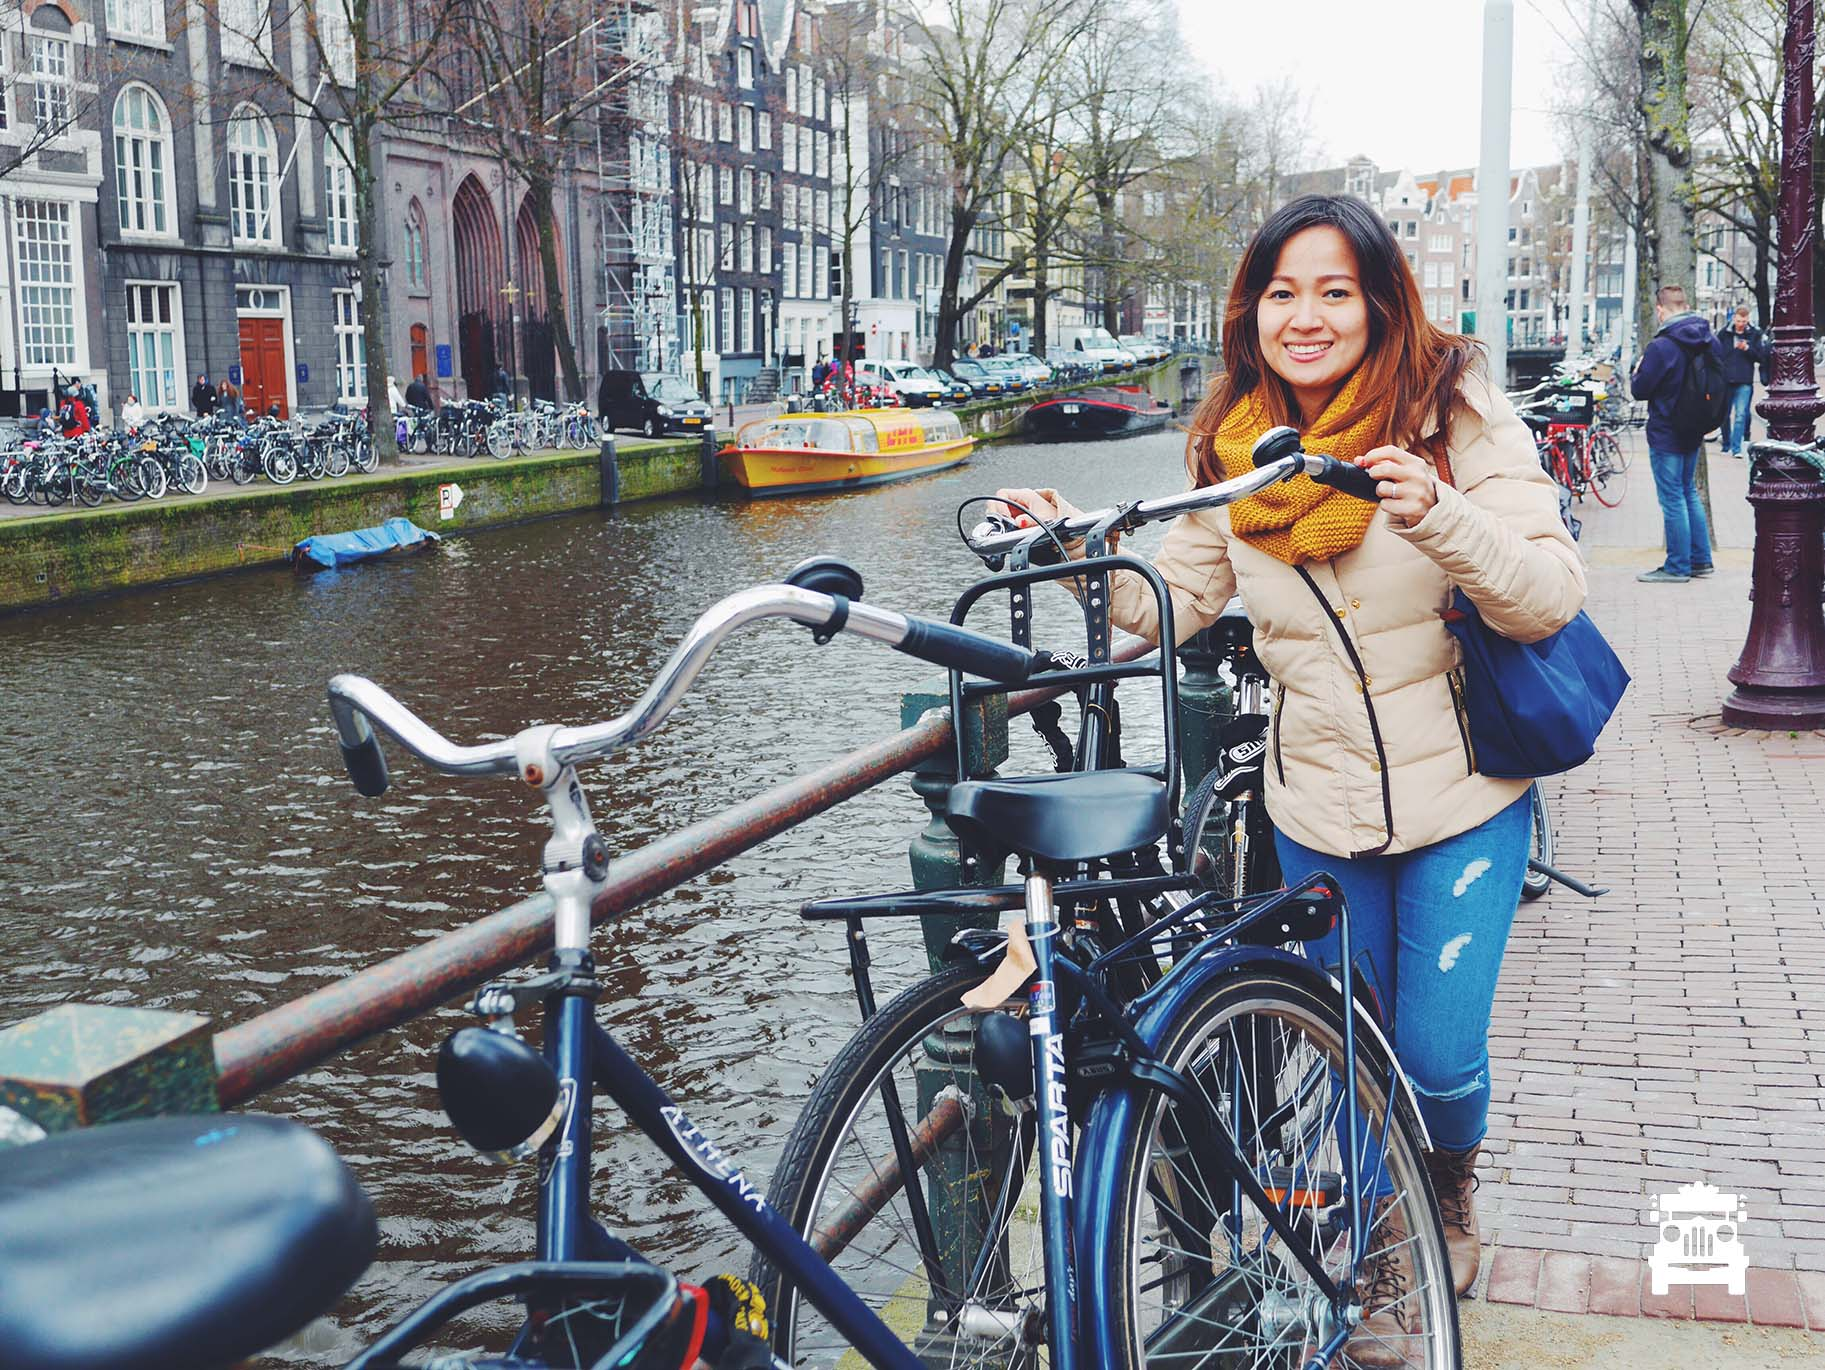 Amsterdamers love to ride push bikes, did you know that around 50,000 are stolen each year?